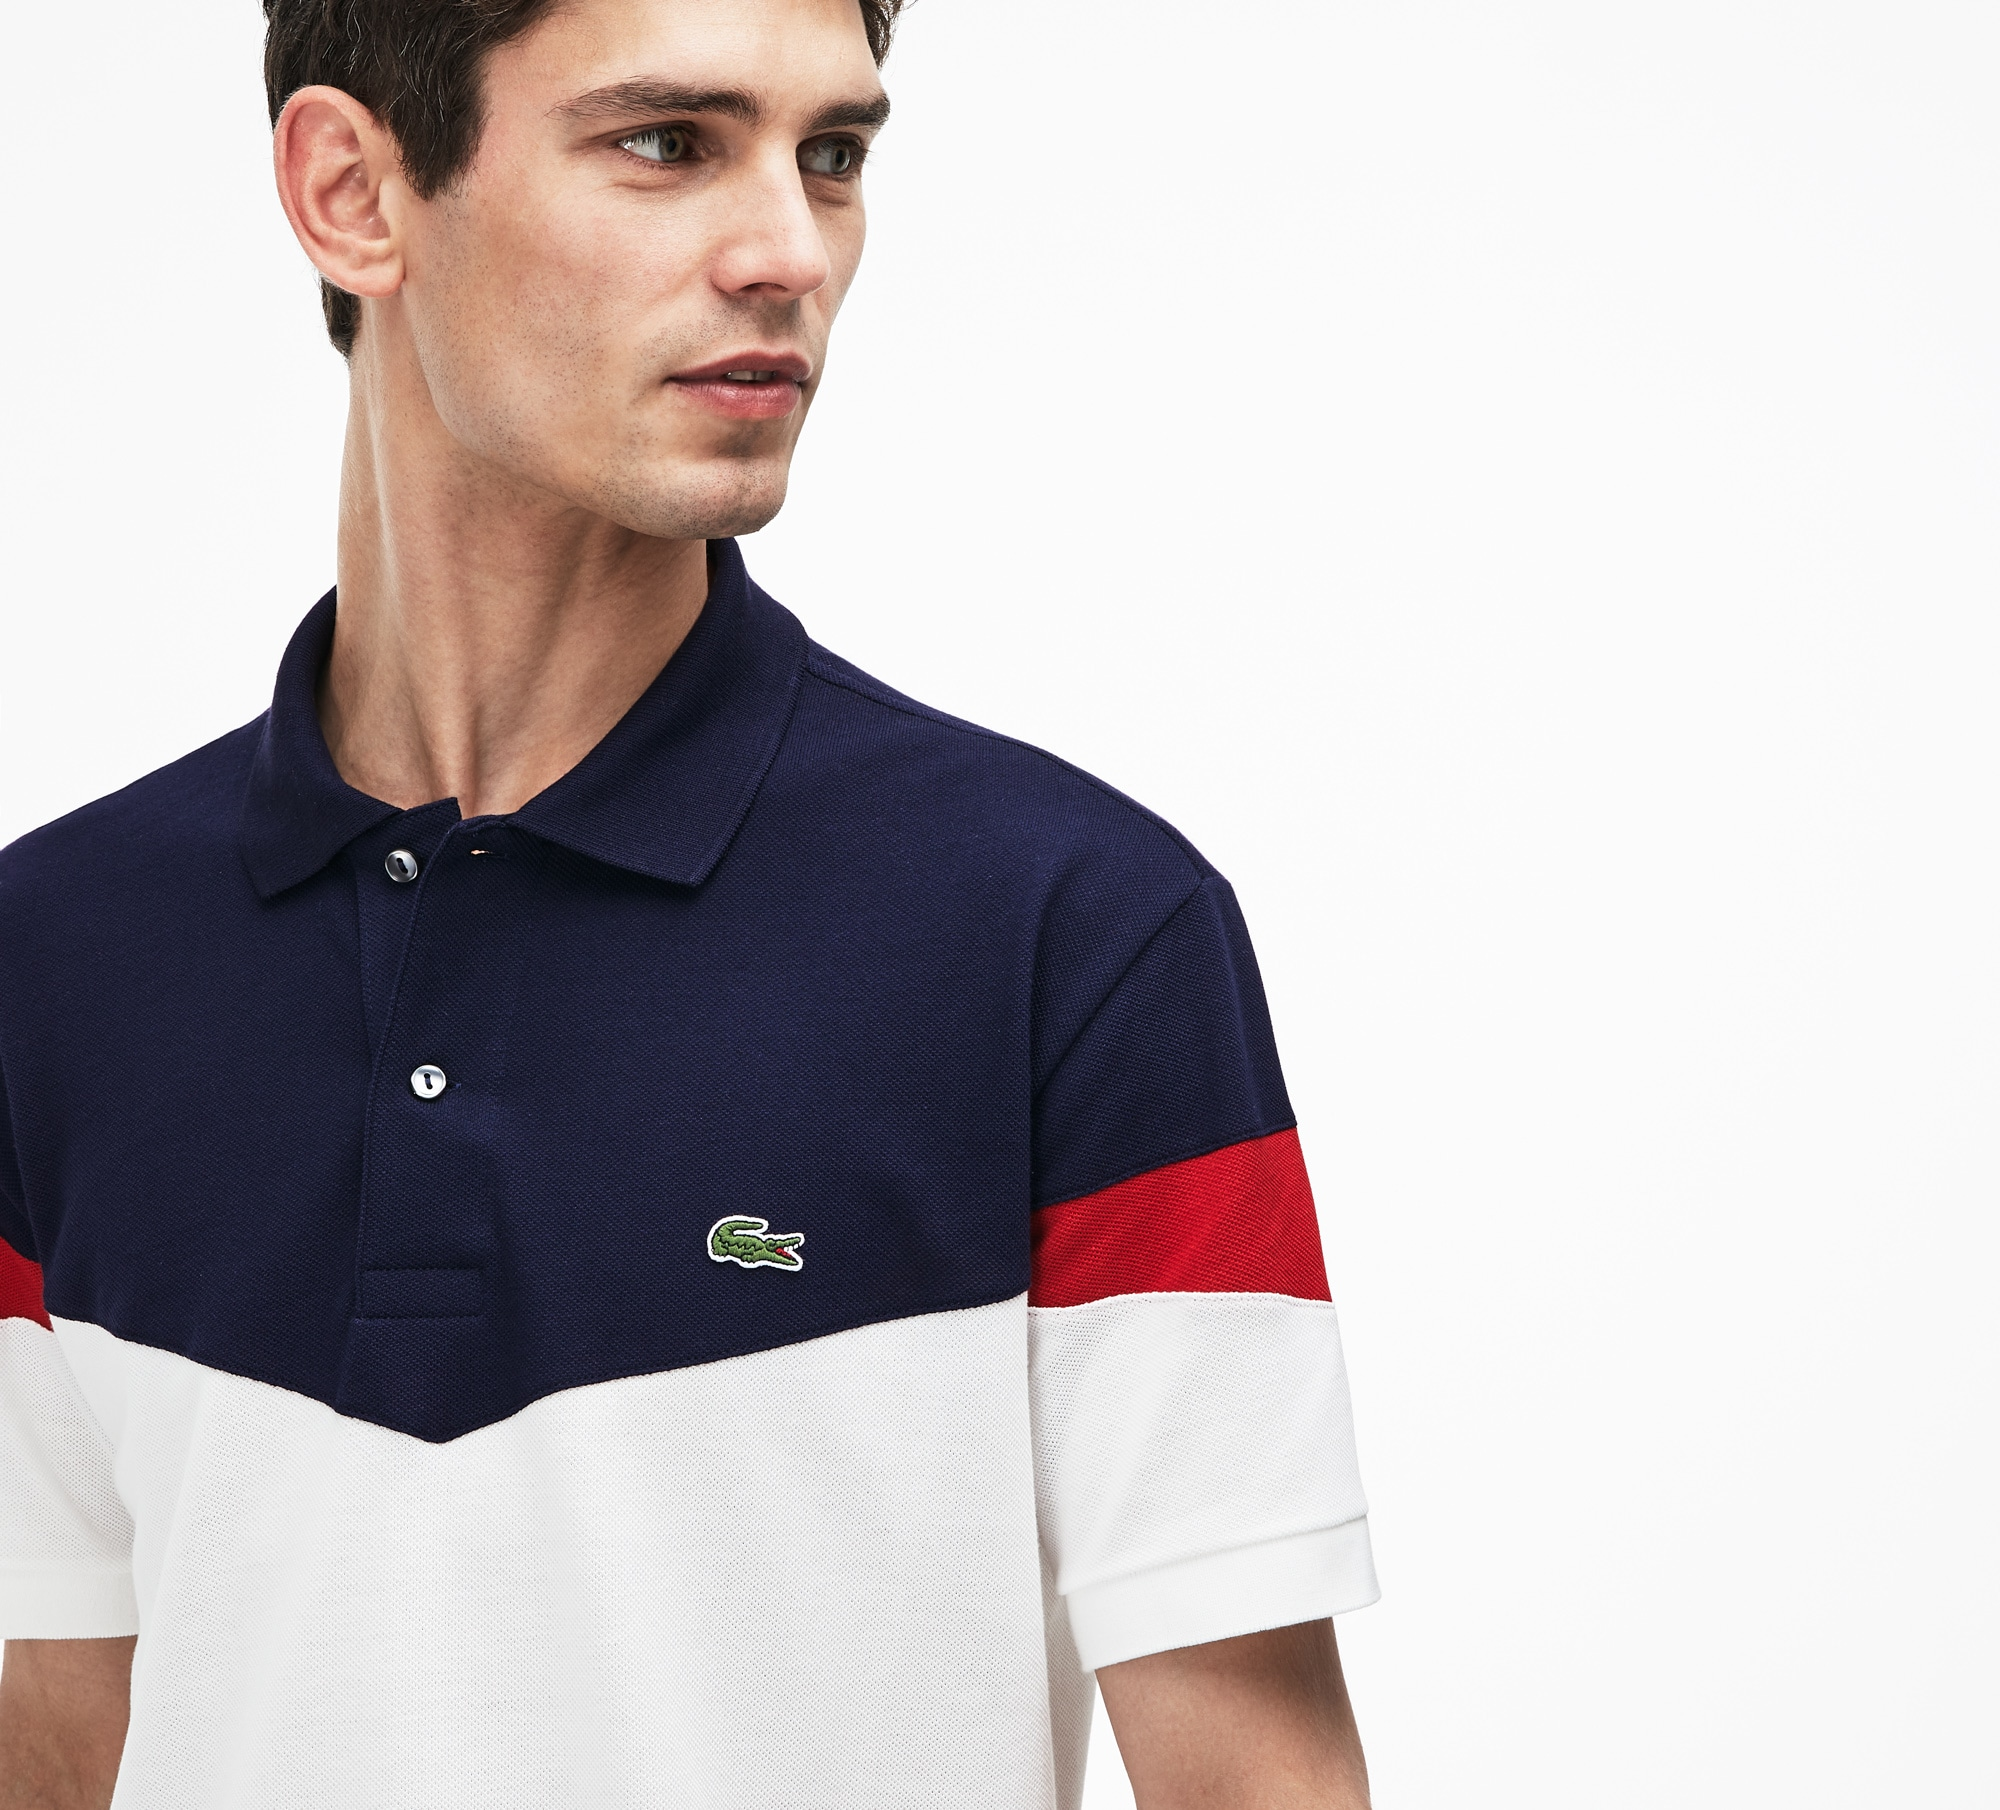 46e6604f25 Men s Lacoste Classic Fit Colourblock Cotton Petit Piqué Polo Shirt ...